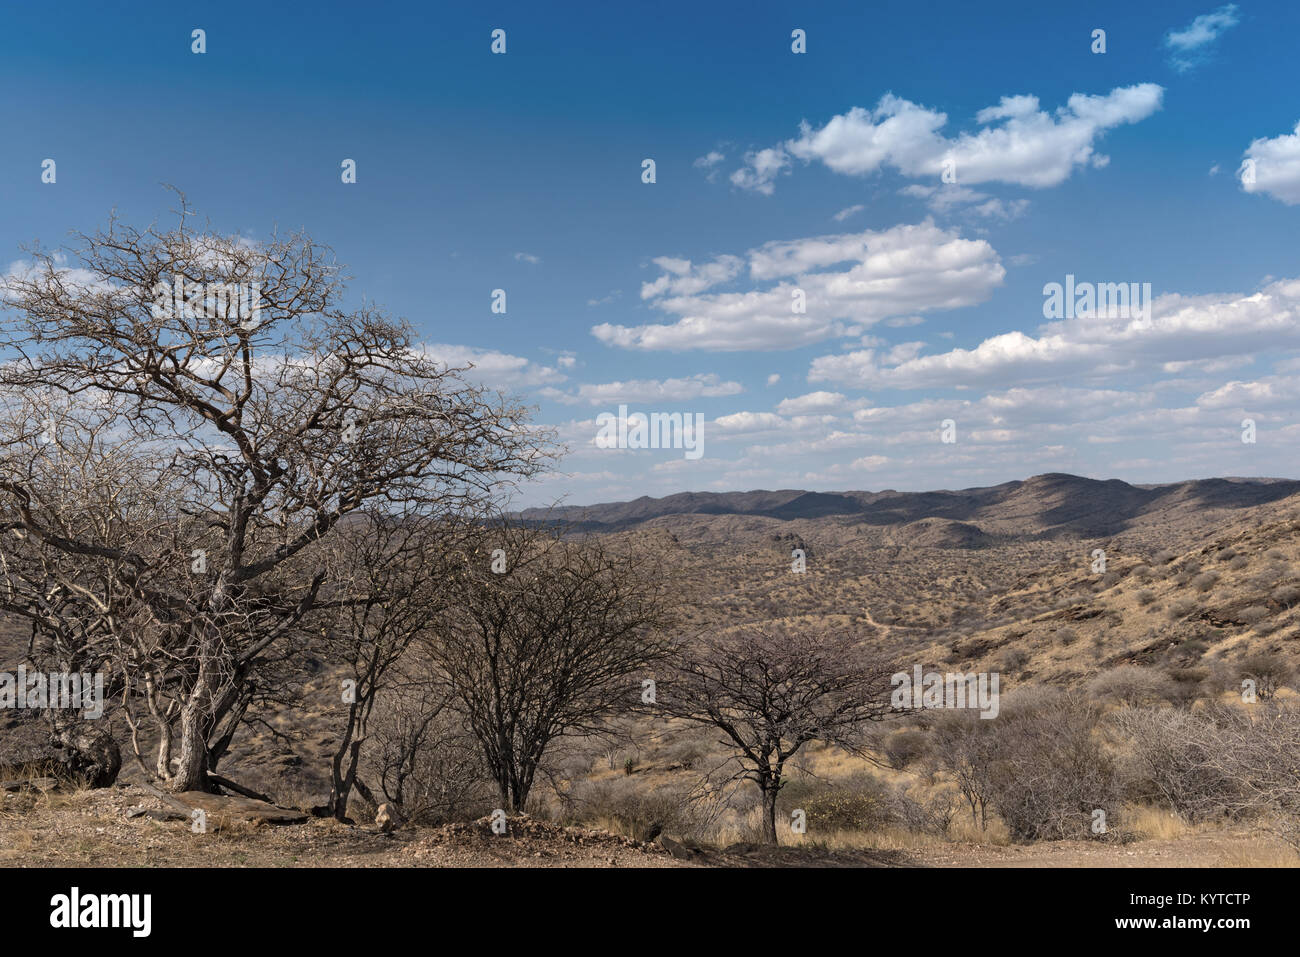 View of the Eros Mountains north of Windhoek, Namibia - Stock Image